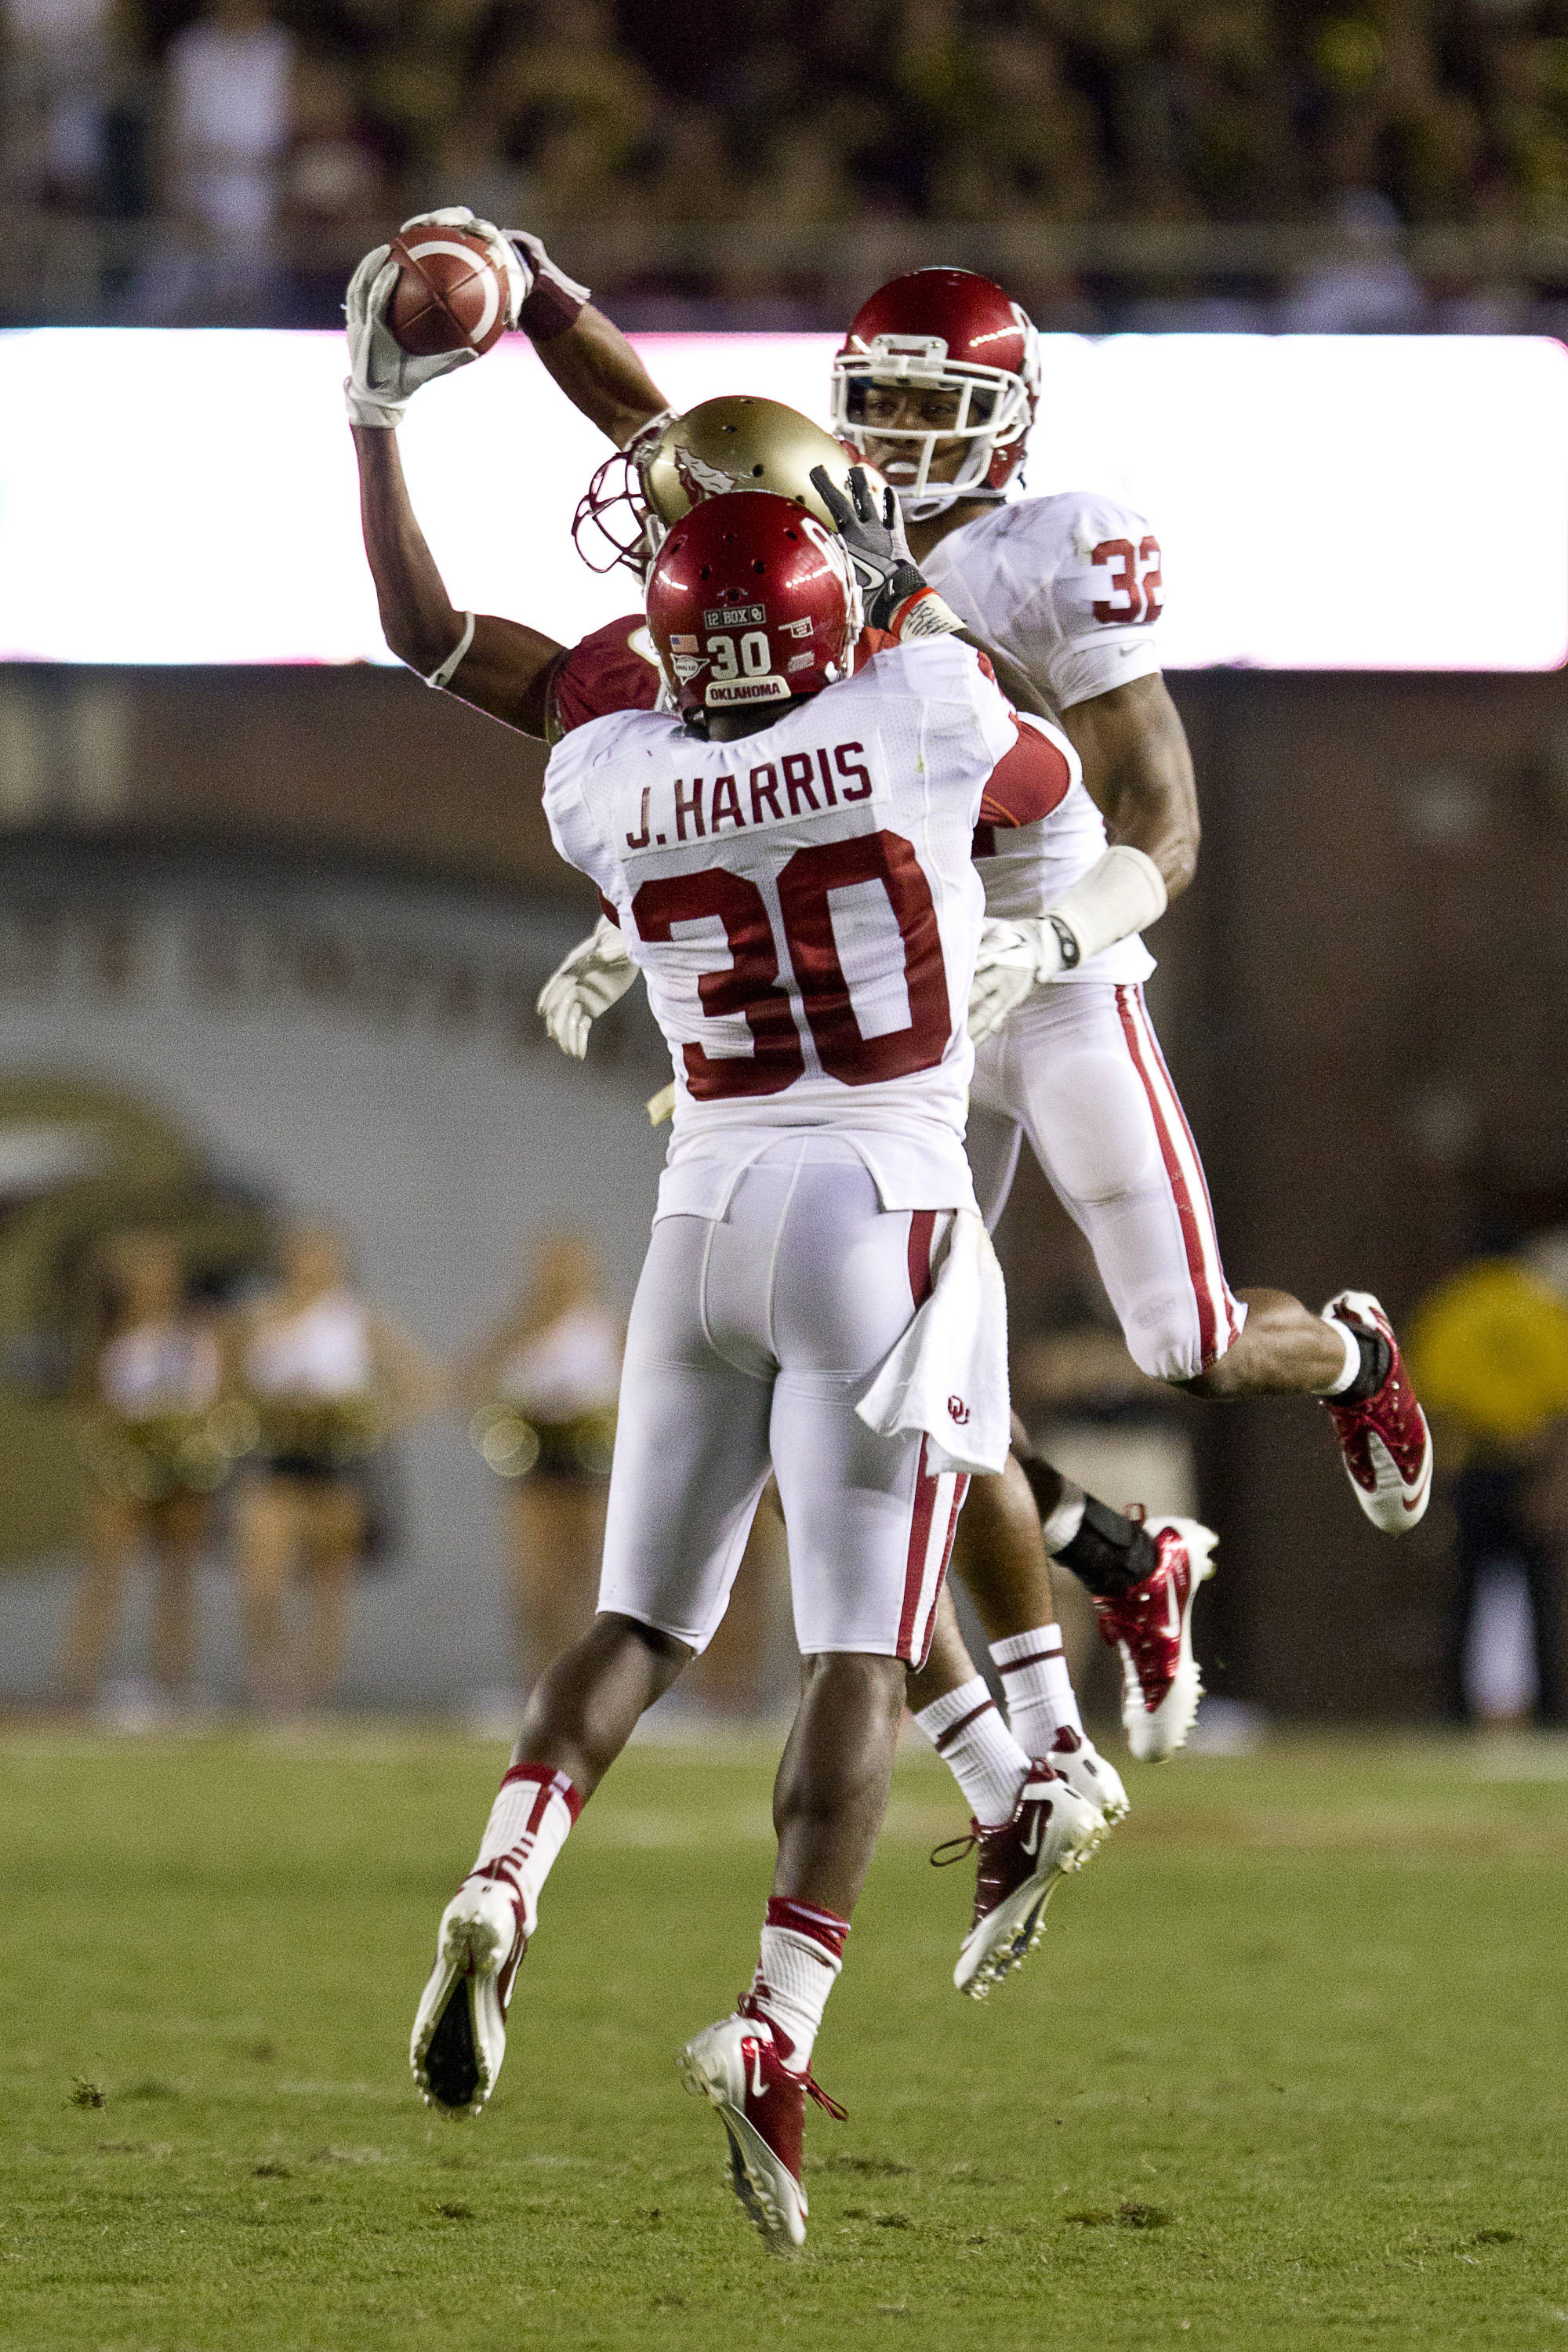 Rashad Greene (80), flanked by two defenders, catches a pass and runs it in for a touchdown during the game against Oklahoma on September 17, 2011.